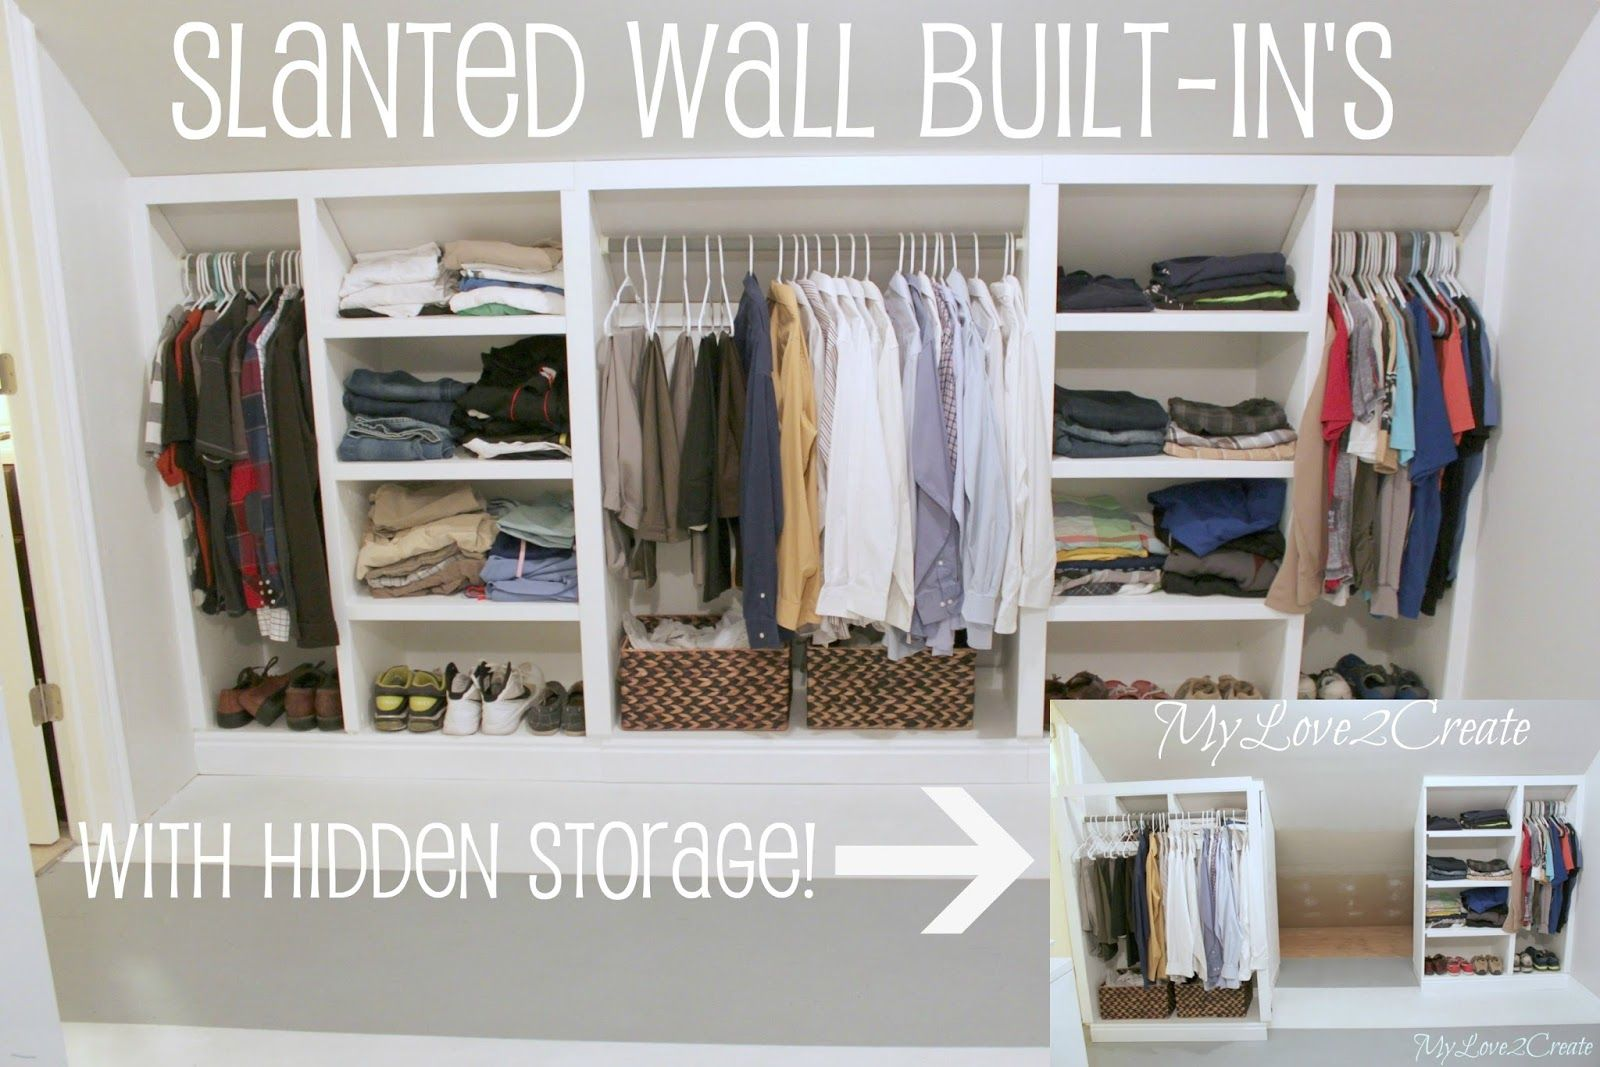 Ikea Wardrobe Under Eaves Slanted Wall Built-ins, With Hidden Storage Tutorial